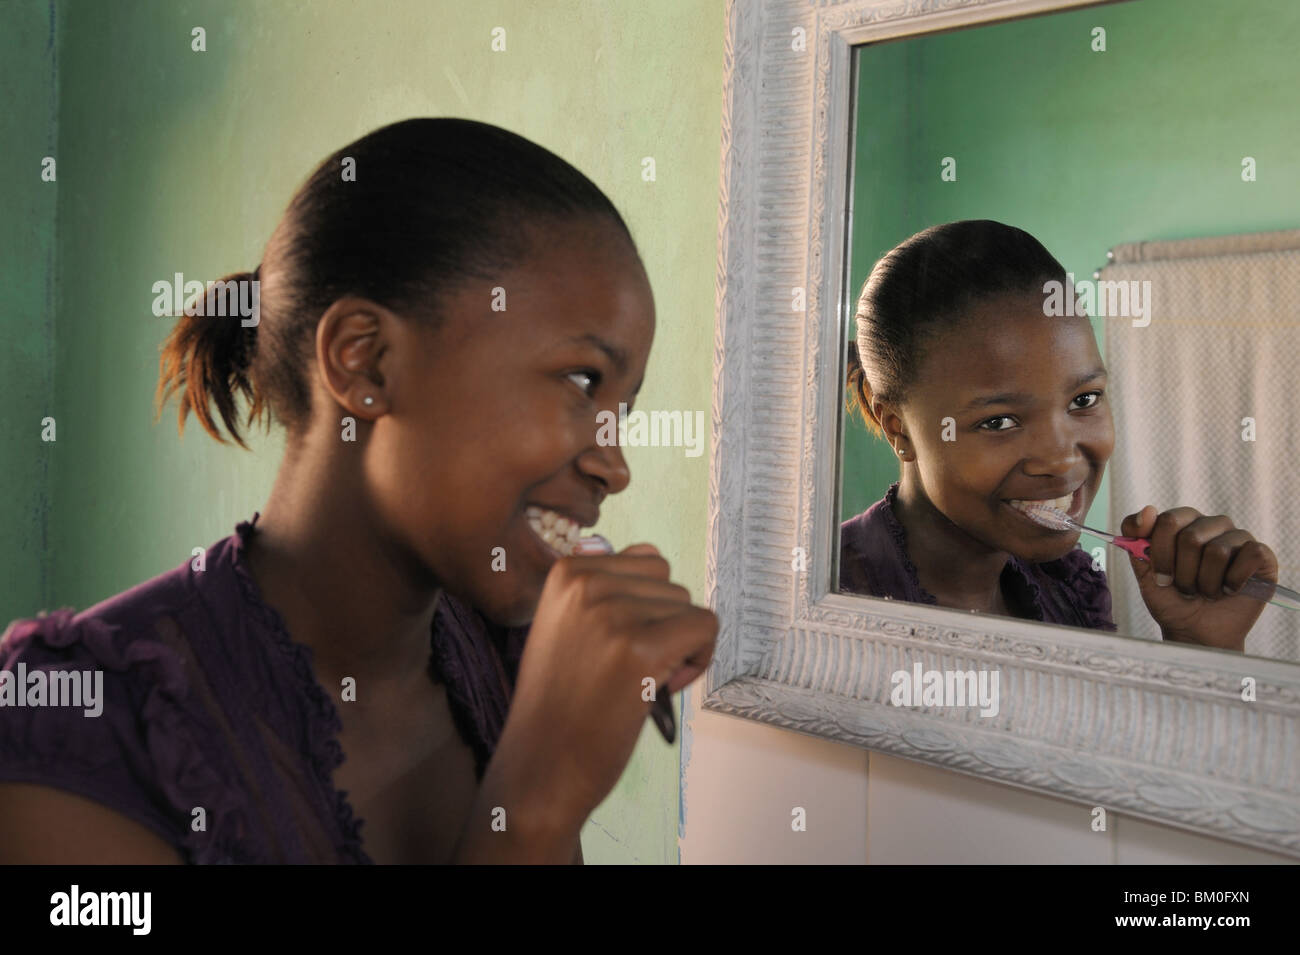 Teenage girl (16-17) brushing teeth, Cape Town, Western Cape Province, South Africa - Stock Image